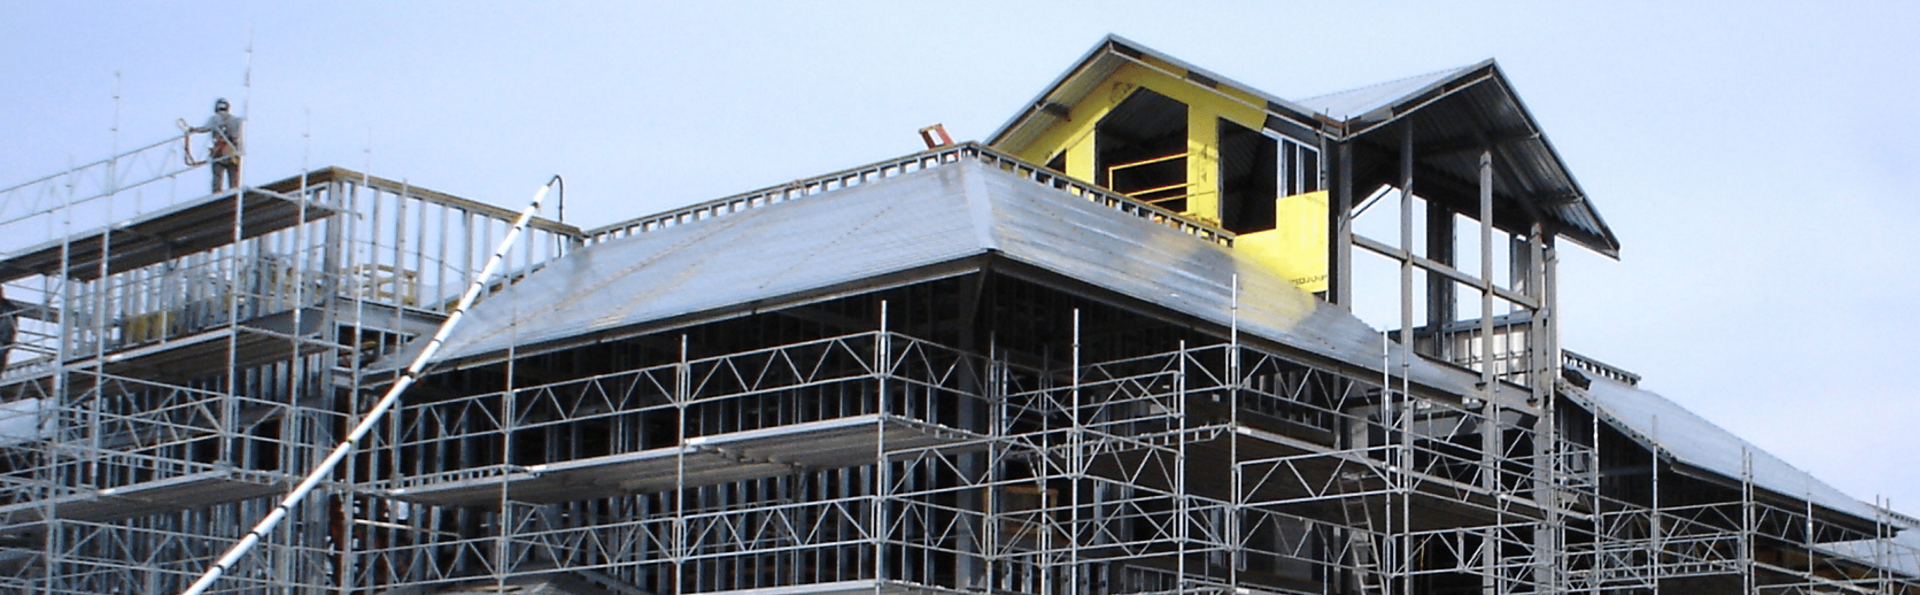 Scaffolding For Education Buildings